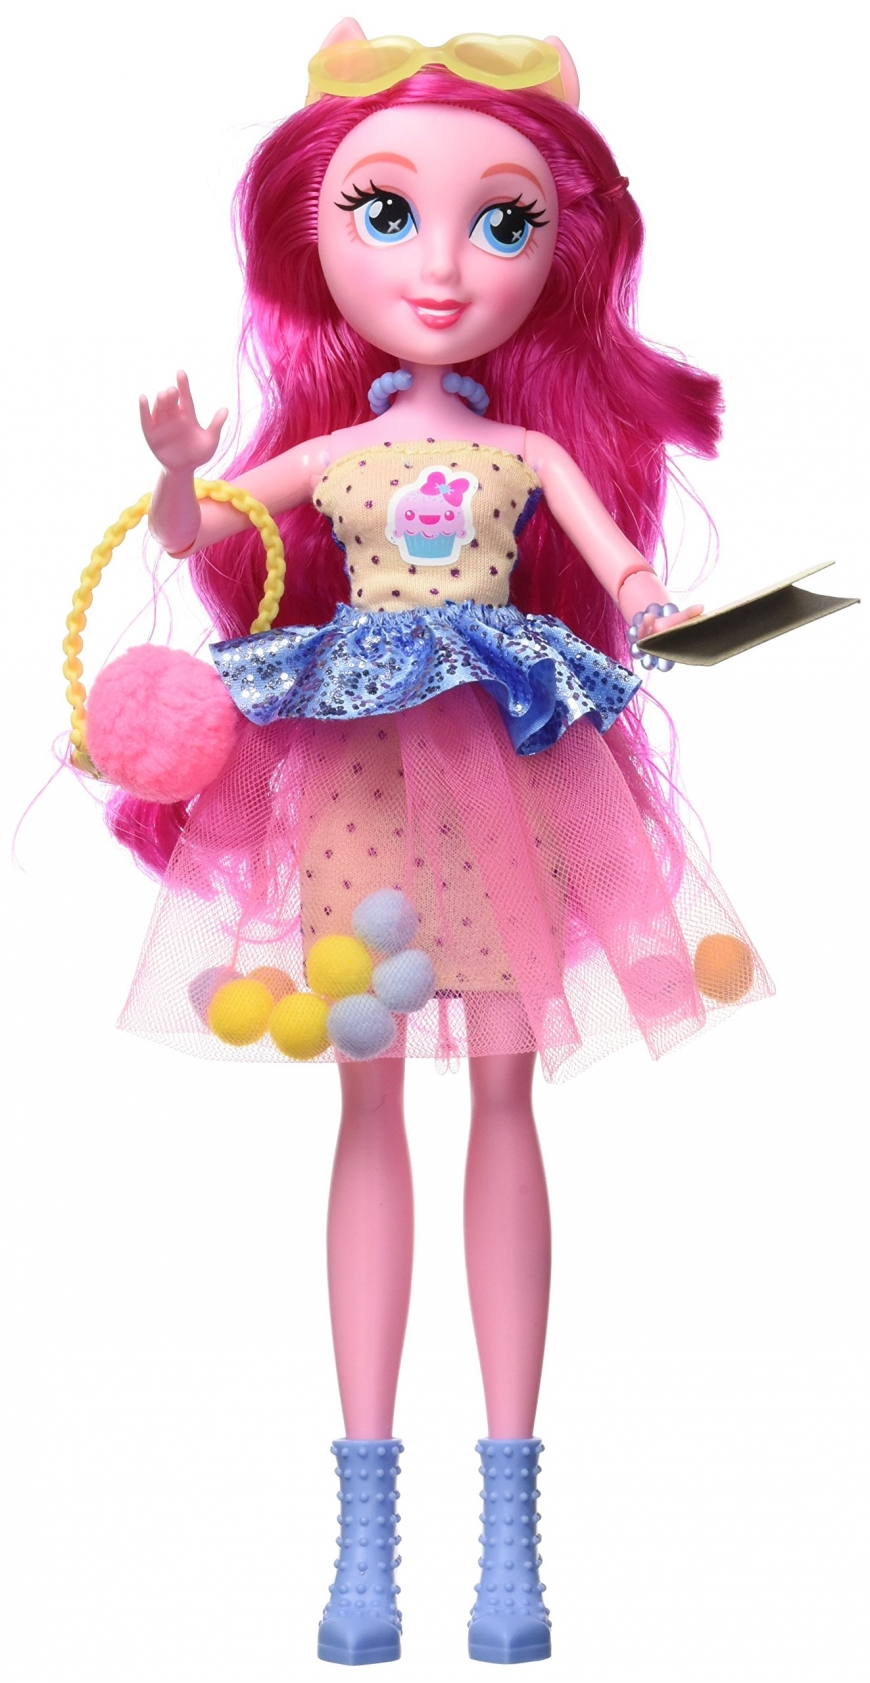 Equestria Girls Deluxe Pinkie Pie Fashion Doll